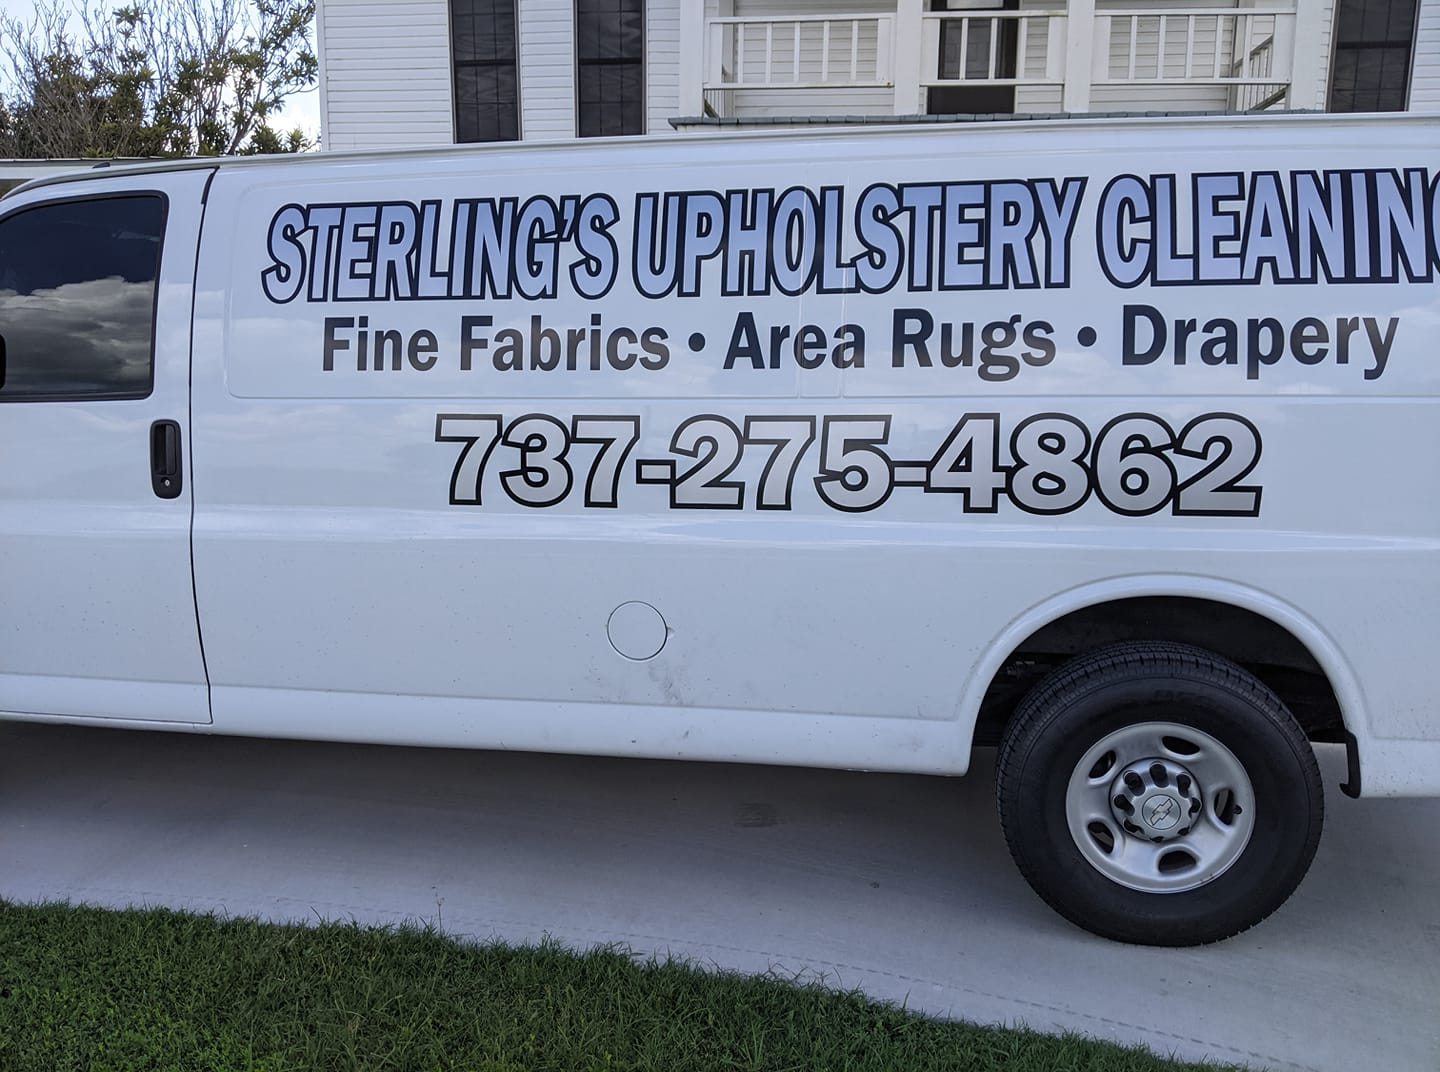 Sterling's Upholstery Cleaning